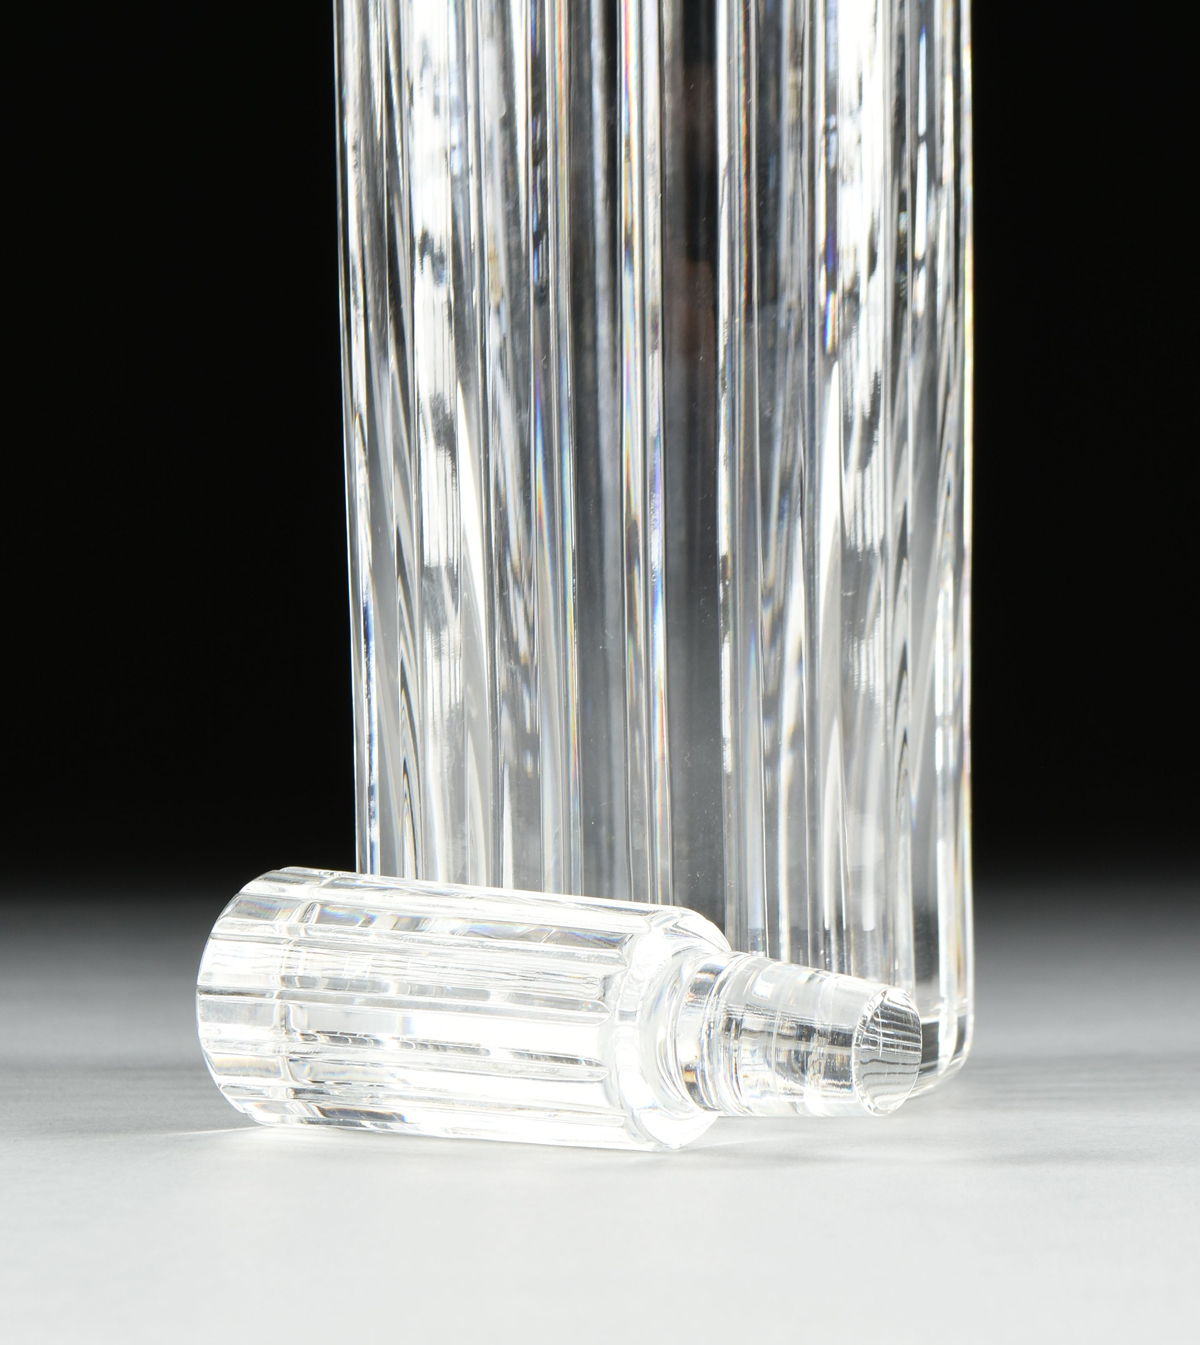 Lot 57 - A BACCARAT CRYSTAL ROUND WHISKEY DECANTER, HARMONIE PATTERN, SIGNED, 20TH CENTURY, the tapered